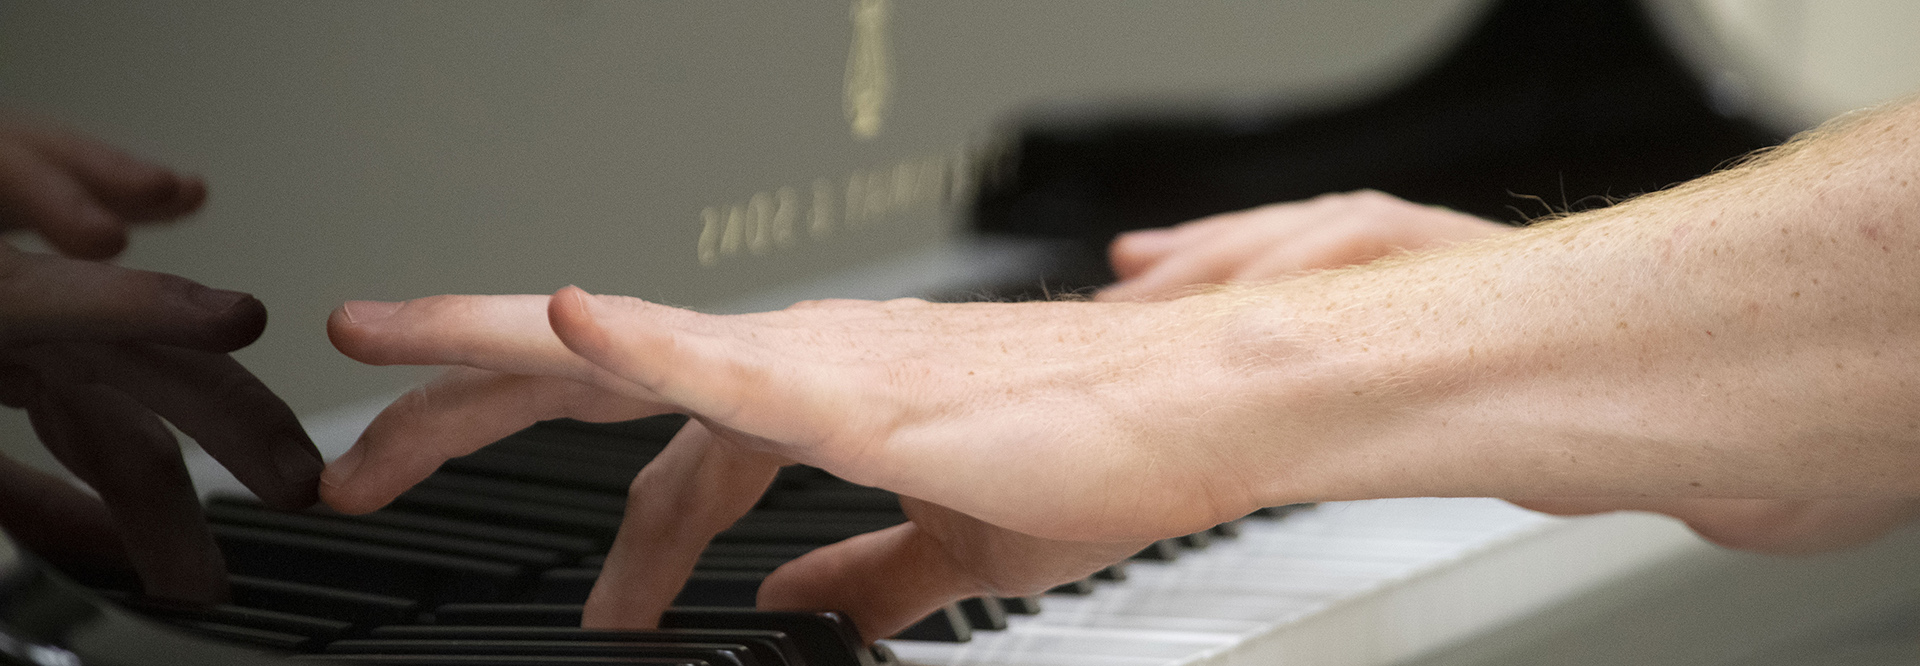 Close up of hands playing a Steinway and Sons Spirio keyboard.